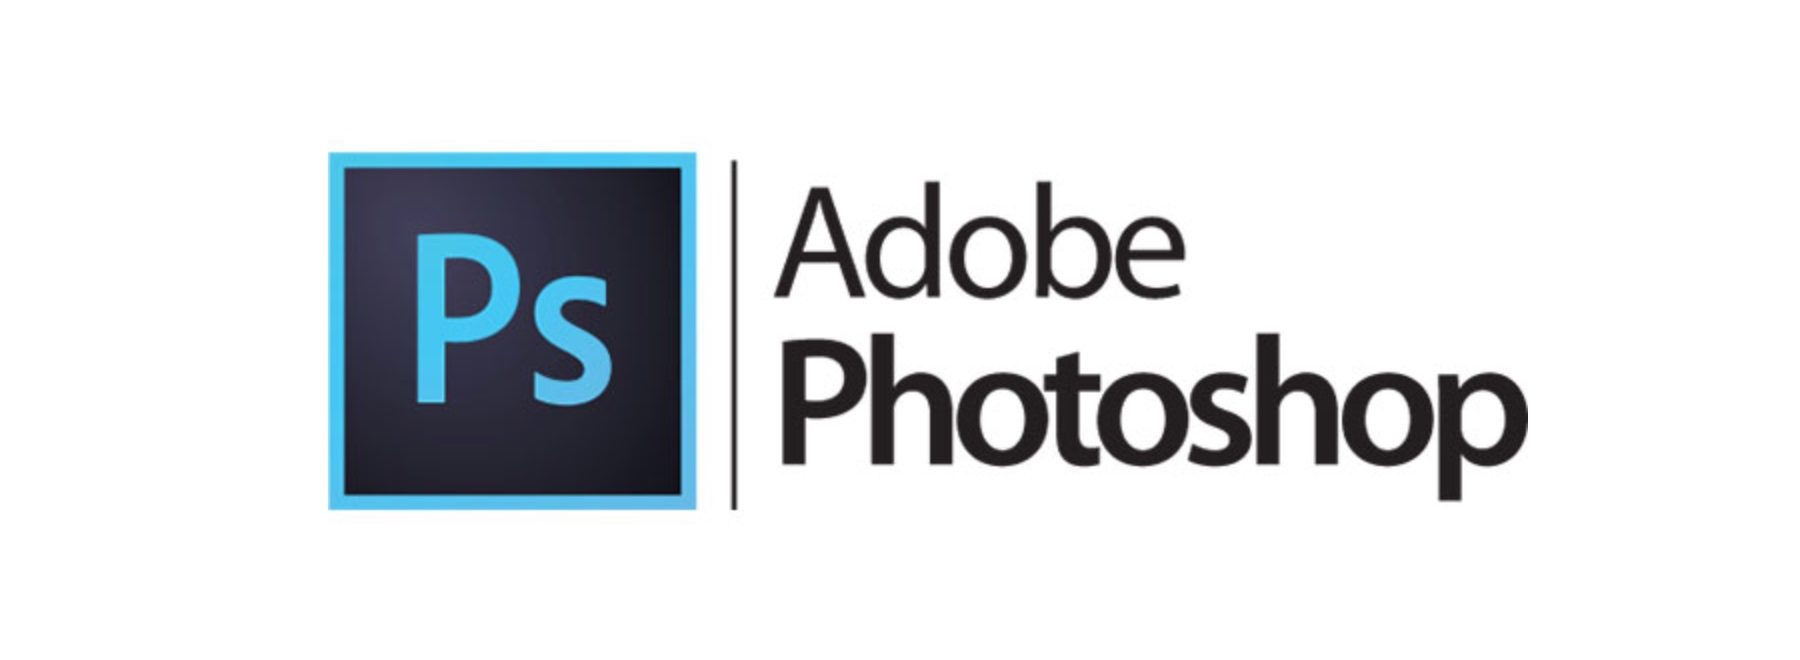 Adobe Photoshop CC 21.2.2 Crack With Serial Key For [Windows & Mac]